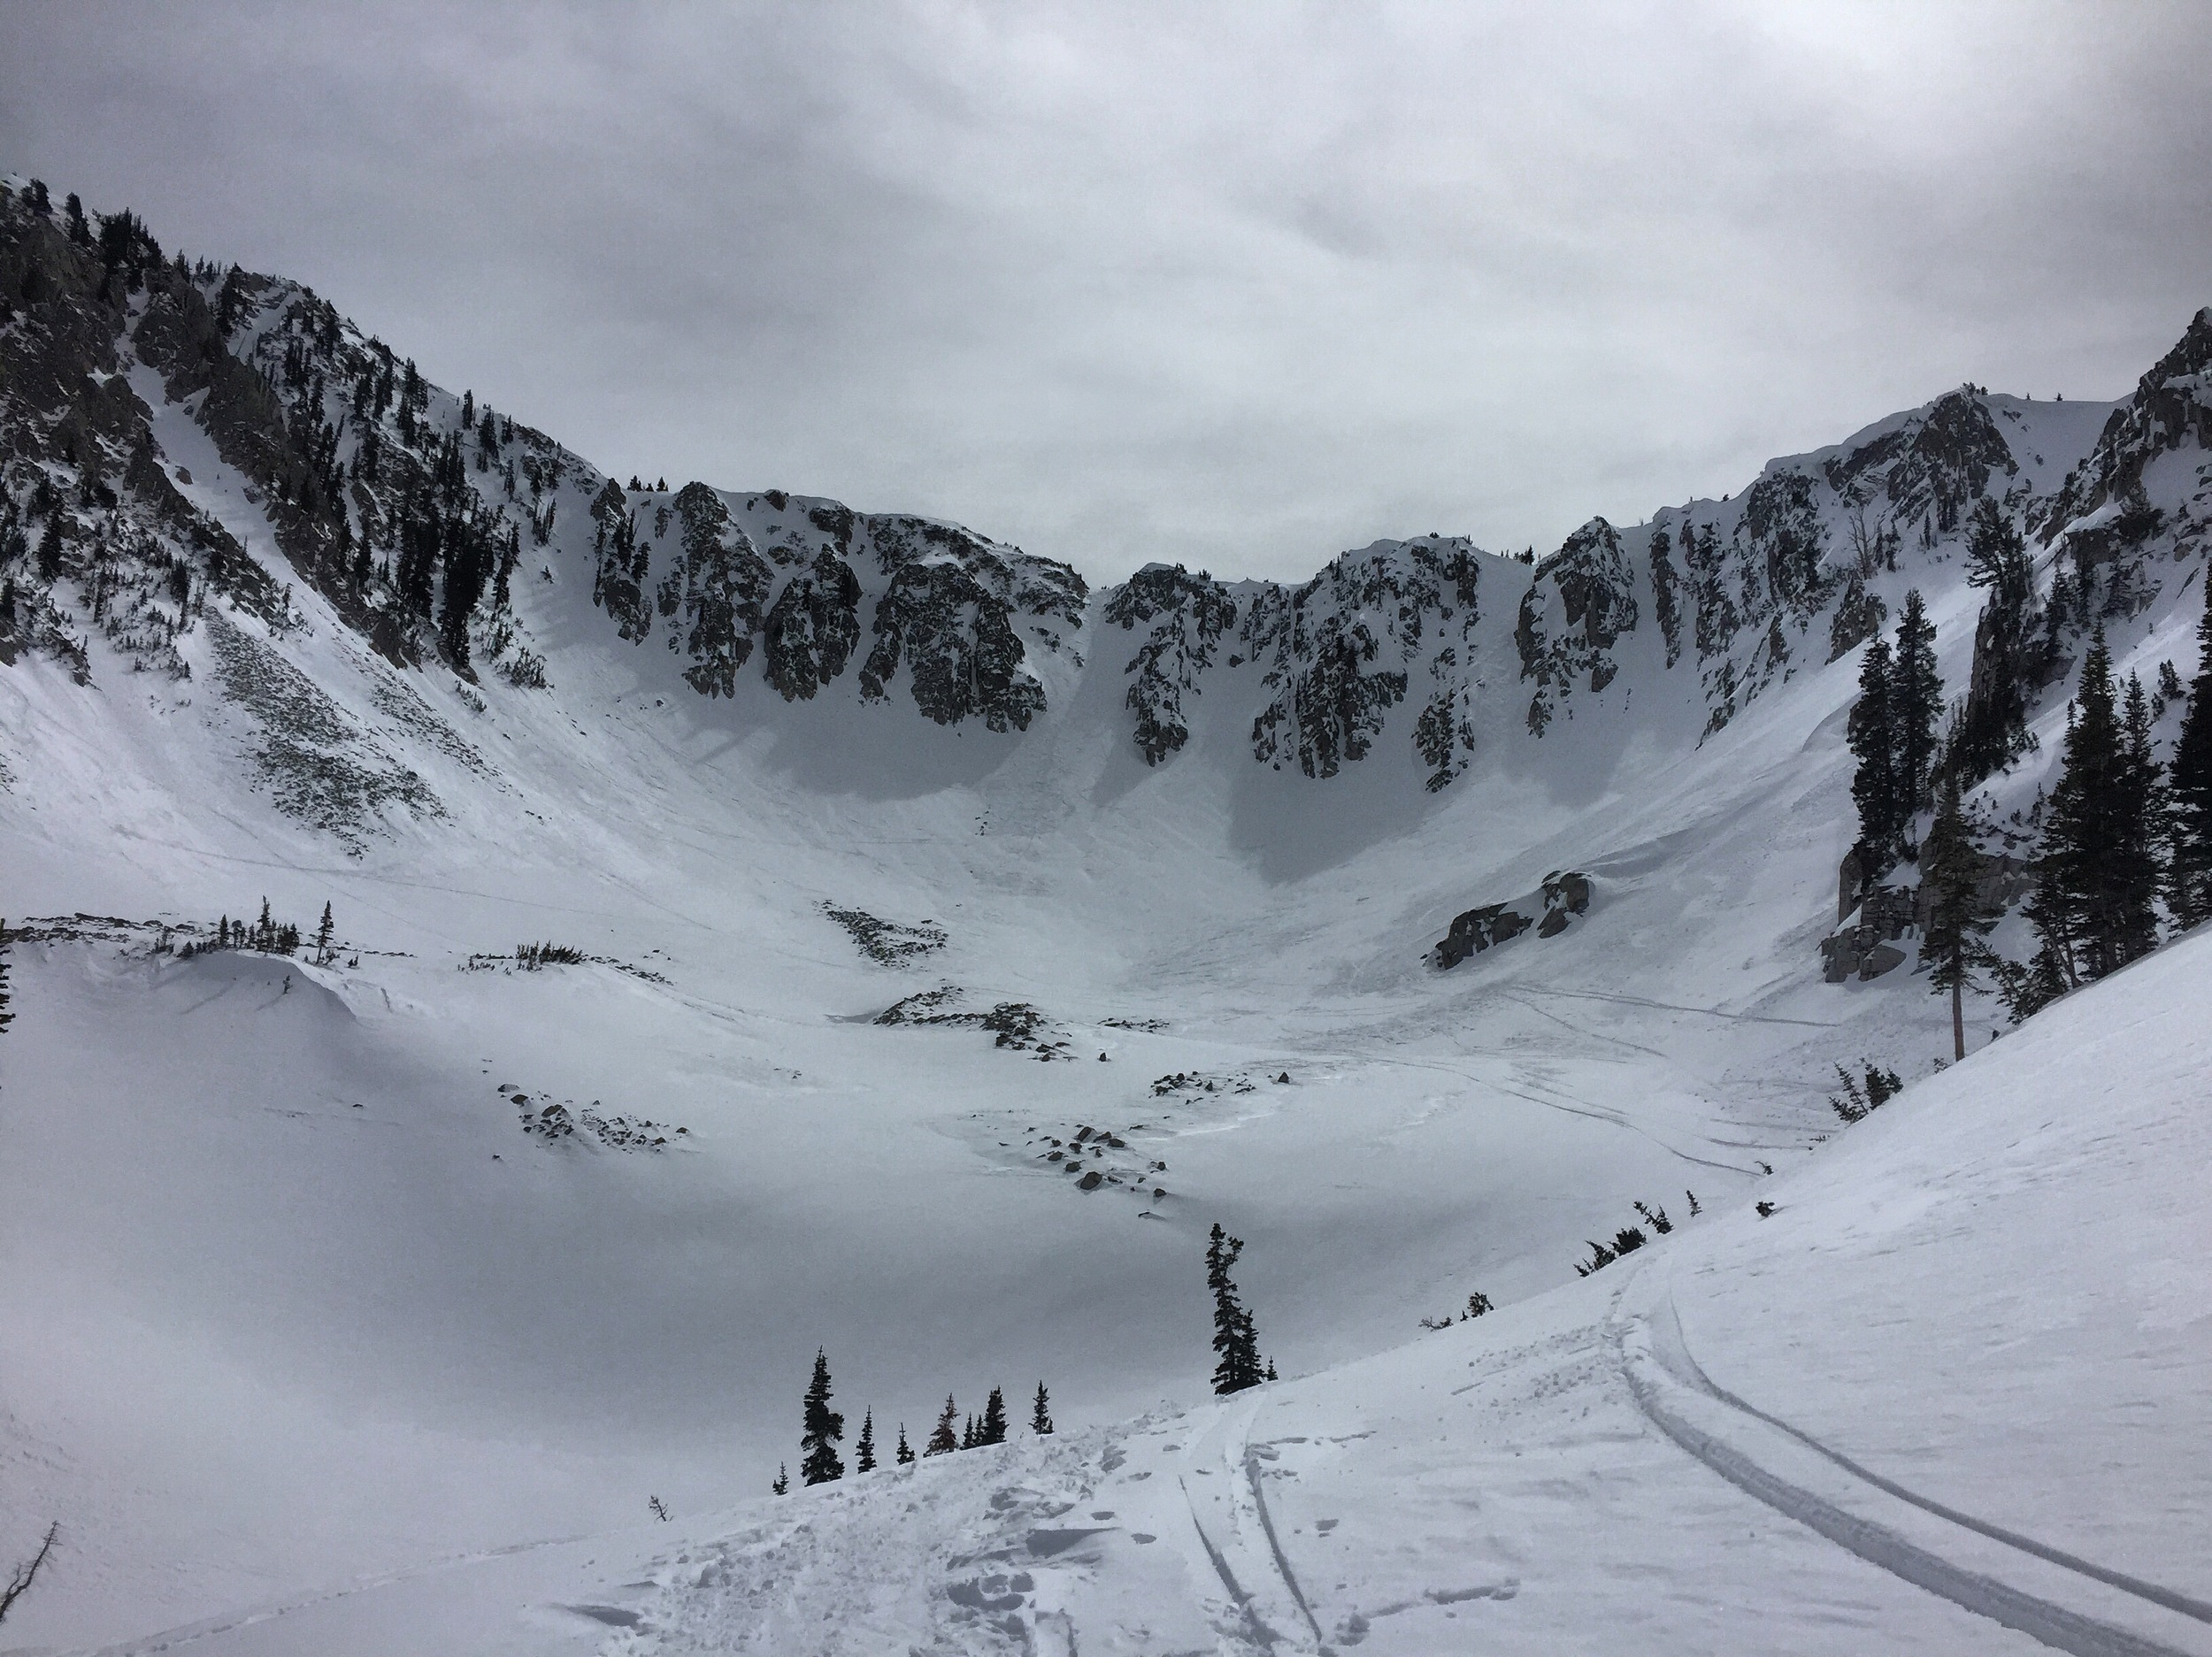 Wolverine Cirque, a popular backcountry skiing destination in Big Cottonwood Canyon.